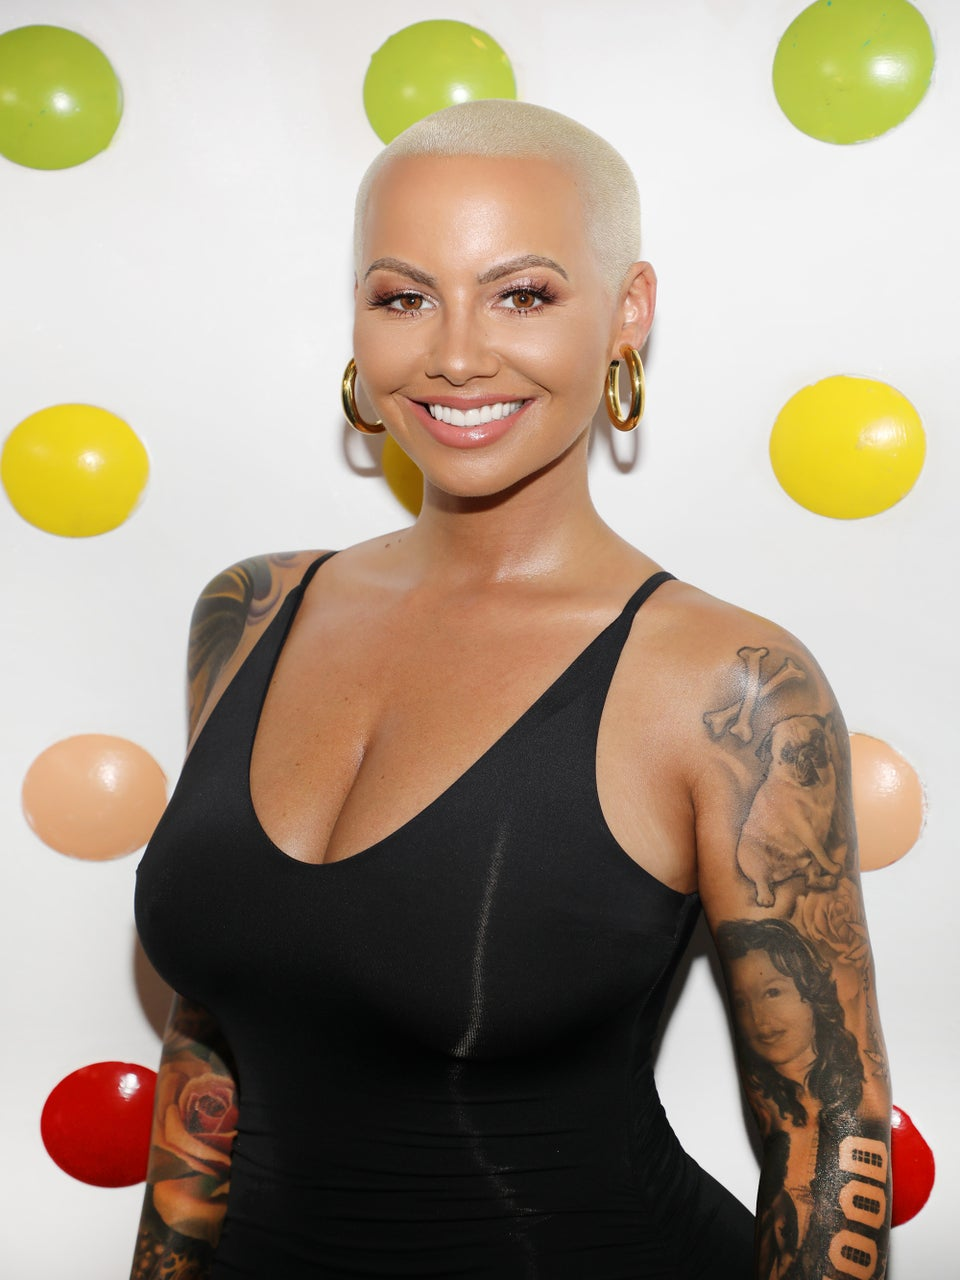 Amber Rose Had A Word For Internet Trolls Who Called Her Son Gay For Liking Taylor Swift's Music